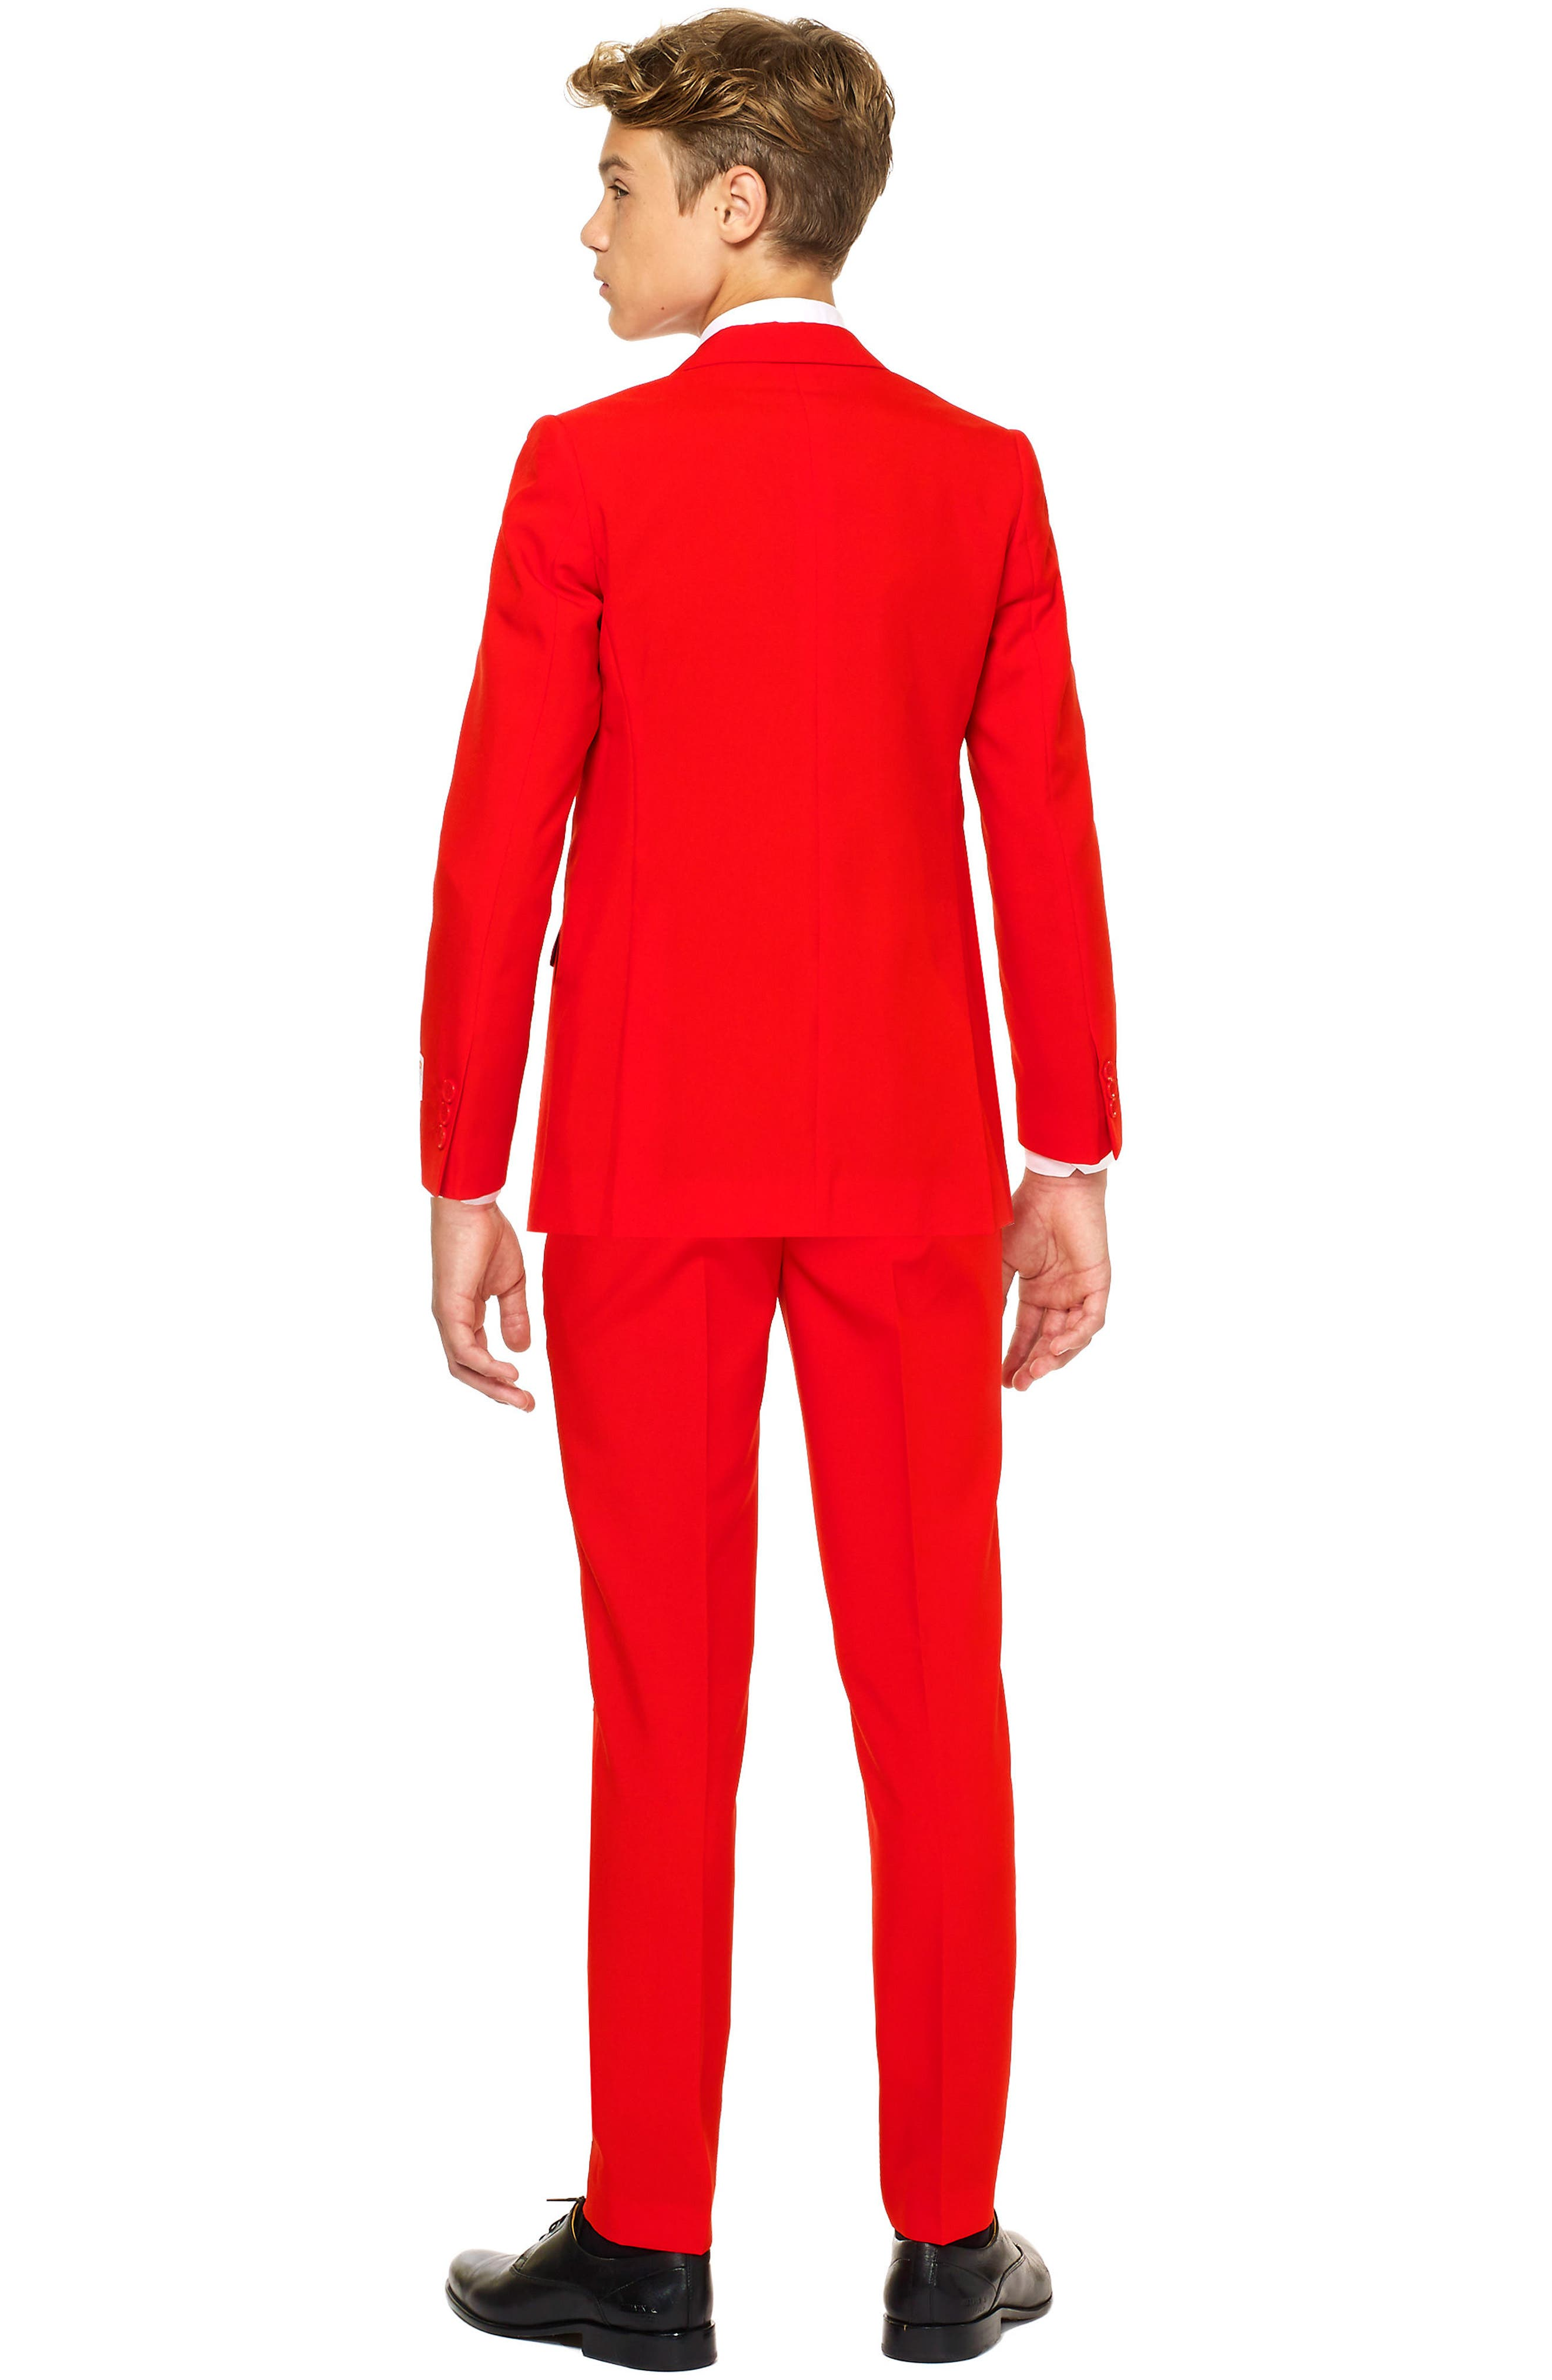 Red Devil Two-Piece Suit with Tie,                             Alternate thumbnail 2, color,                             RED